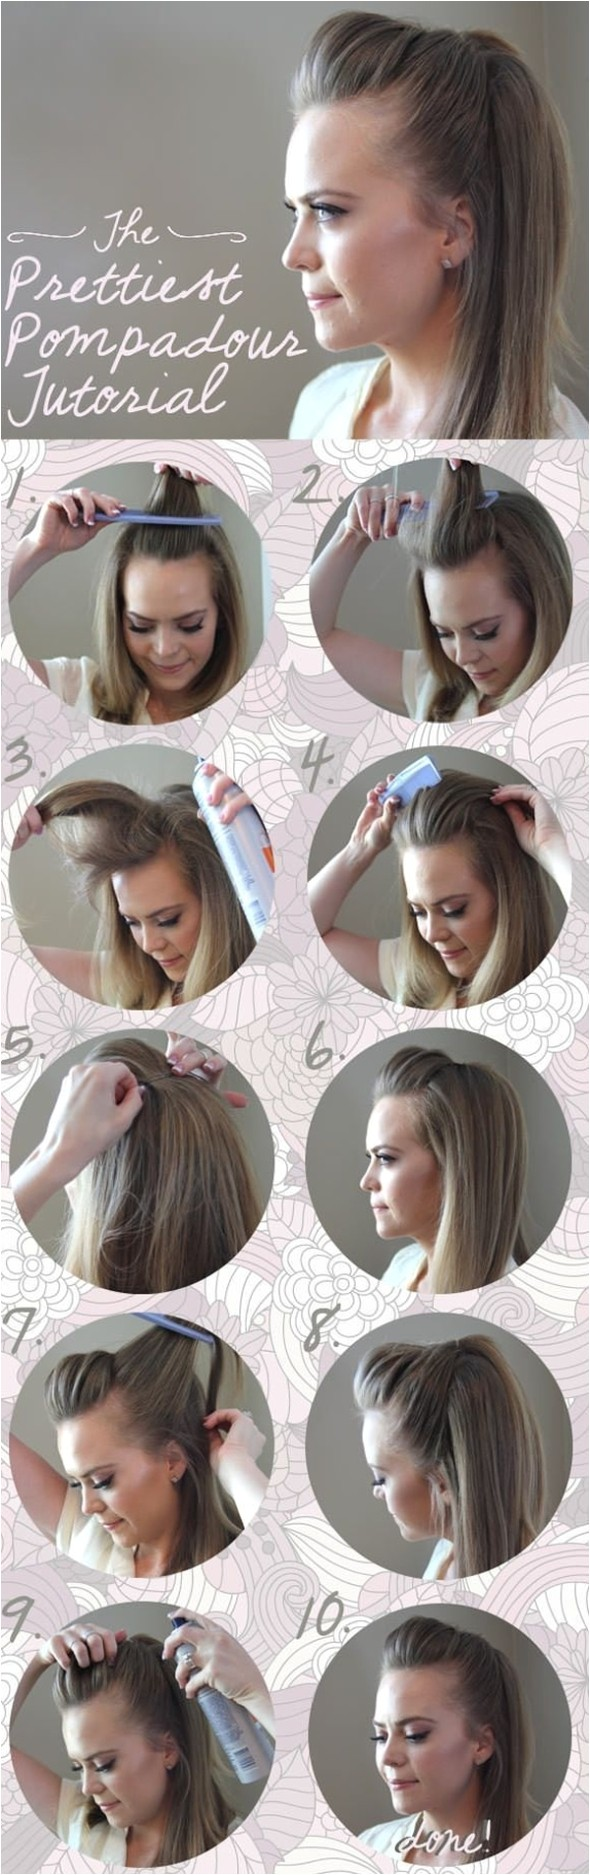 13 five minute hairstyles for school